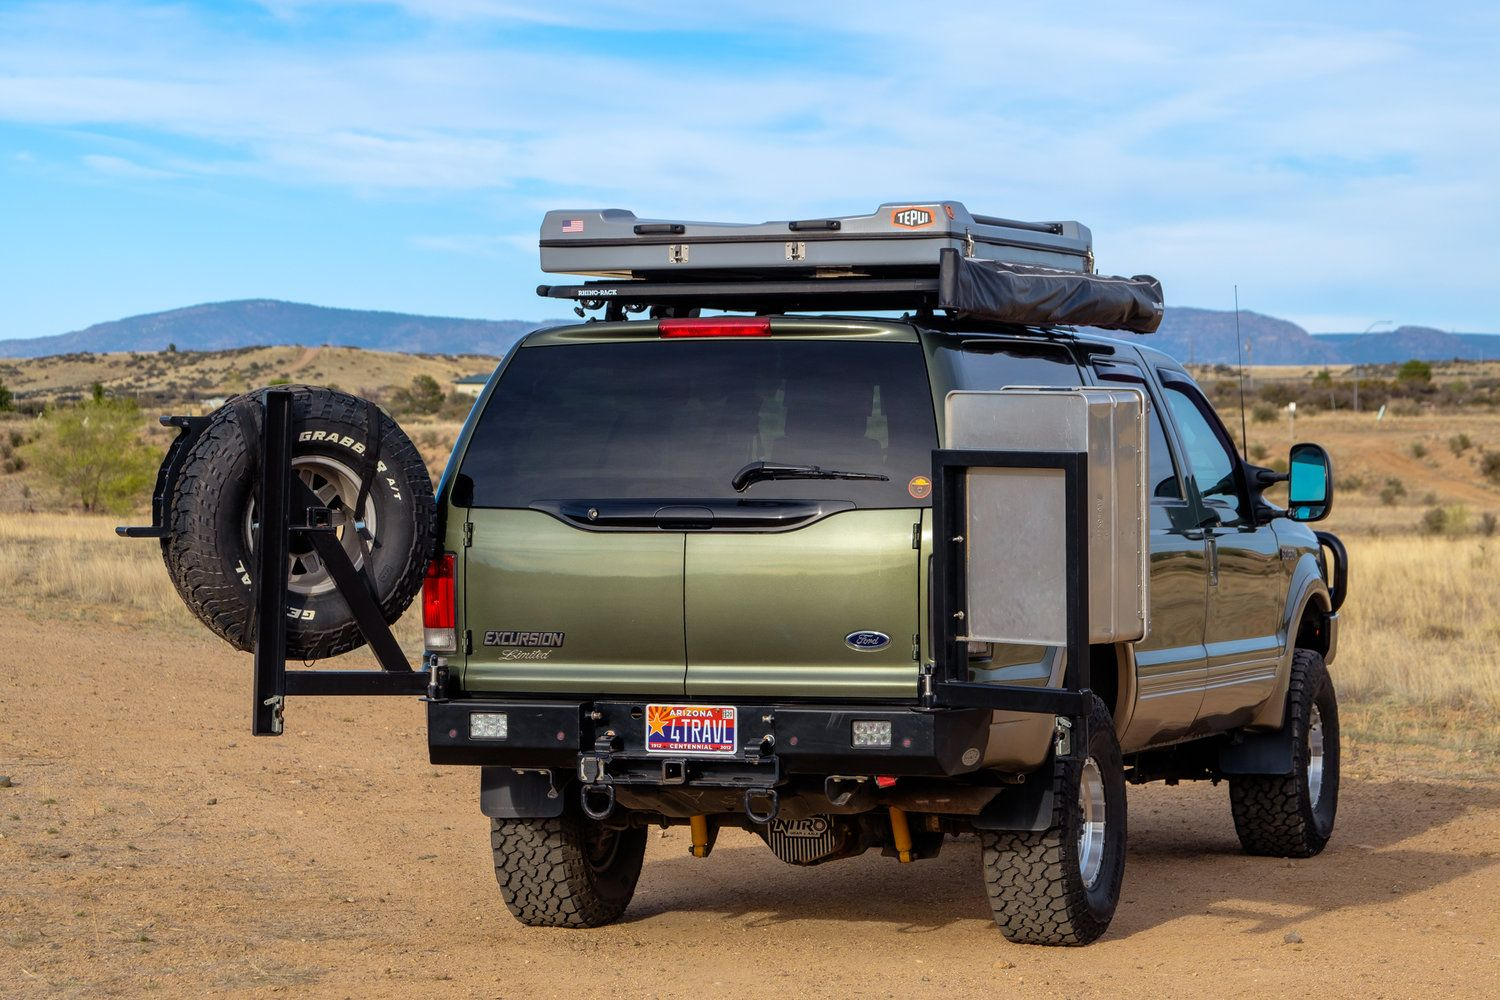 For Sale Ford excursion, Ford excursion diesel, Overland